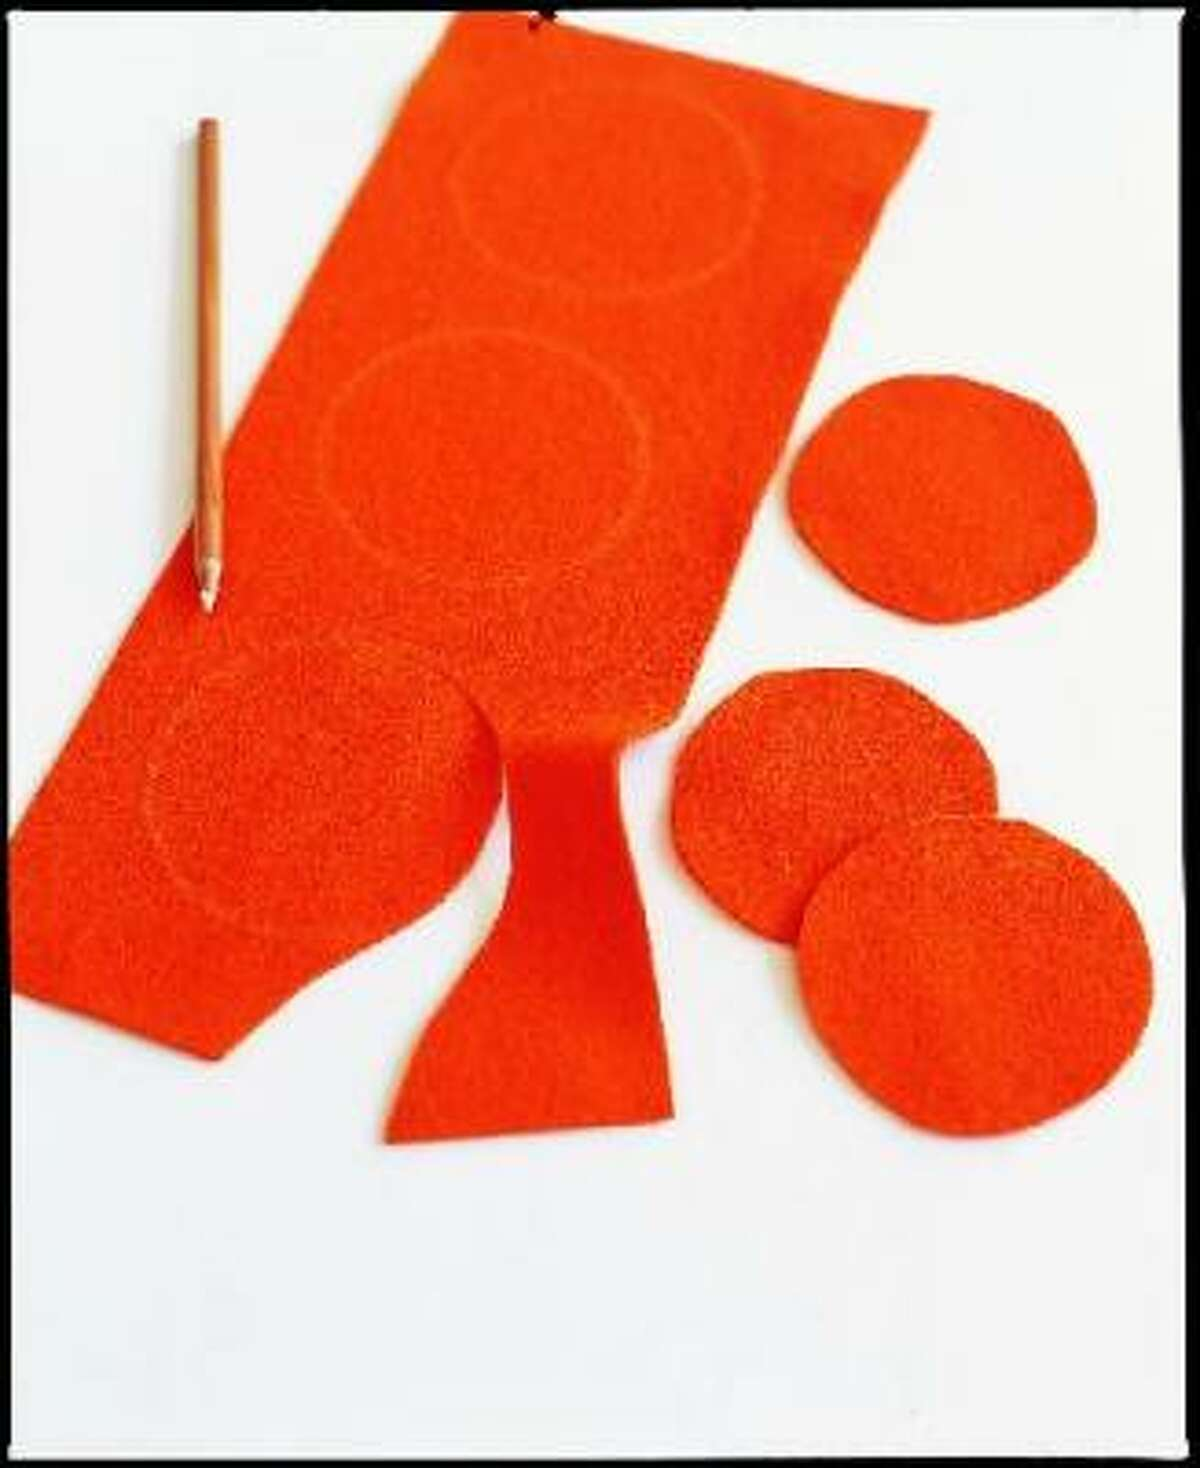 Draw or trace 3-inch circles on felt, then cut them out.